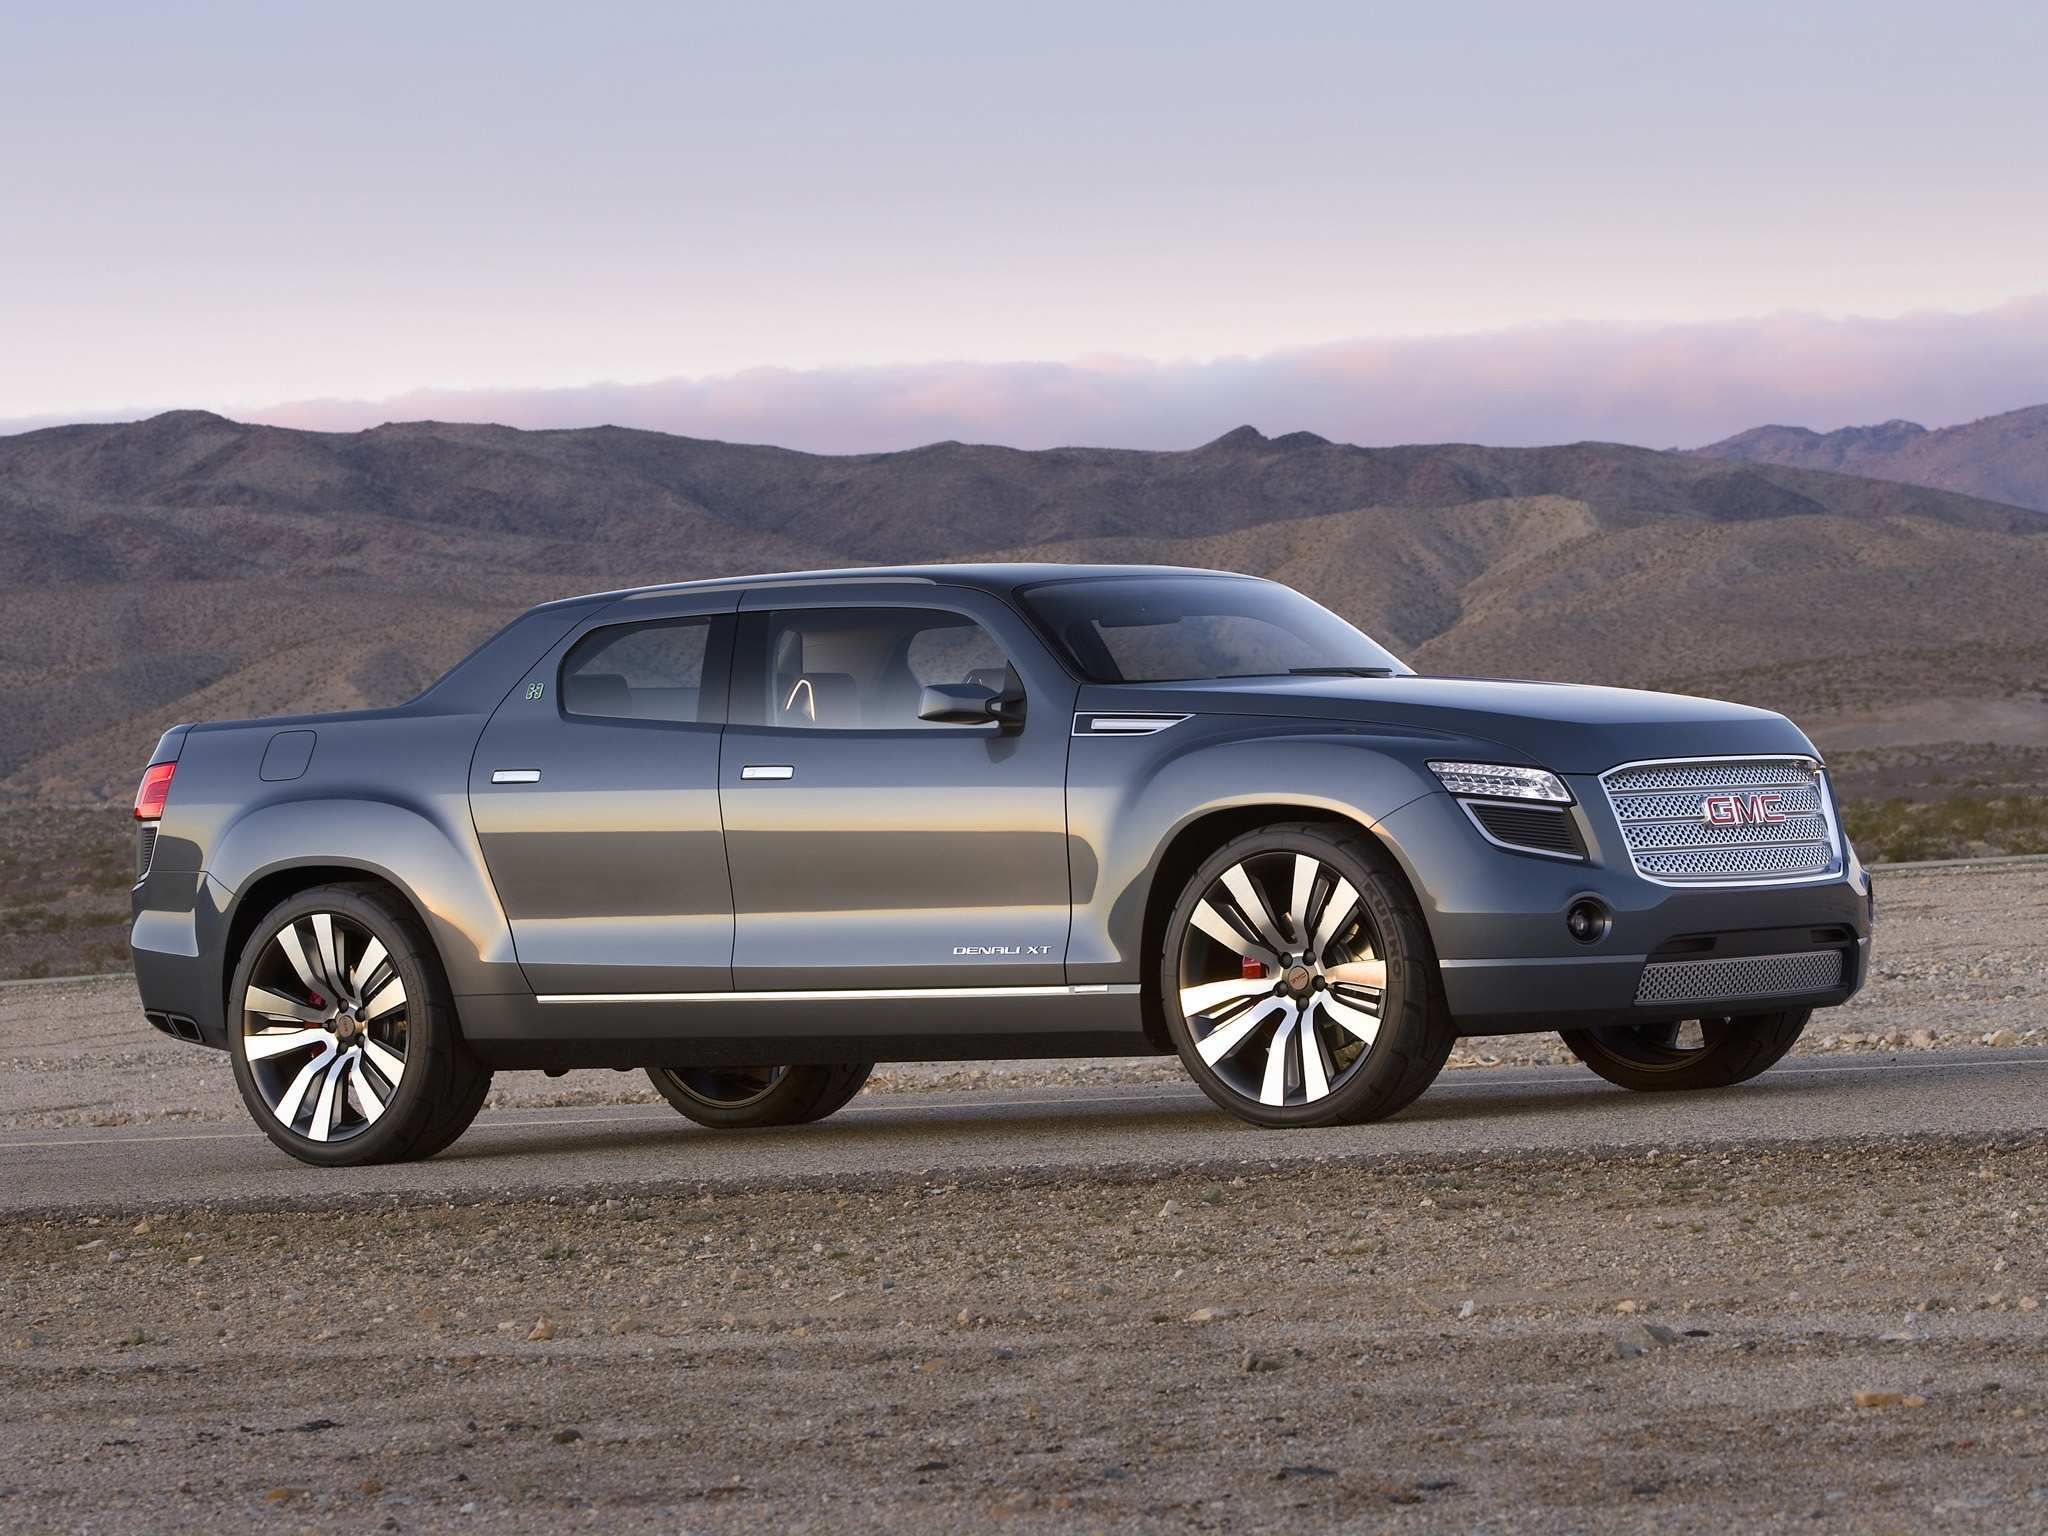 60 Best Review 2019 Gmc Concept Picture with 2019 Gmc Concept